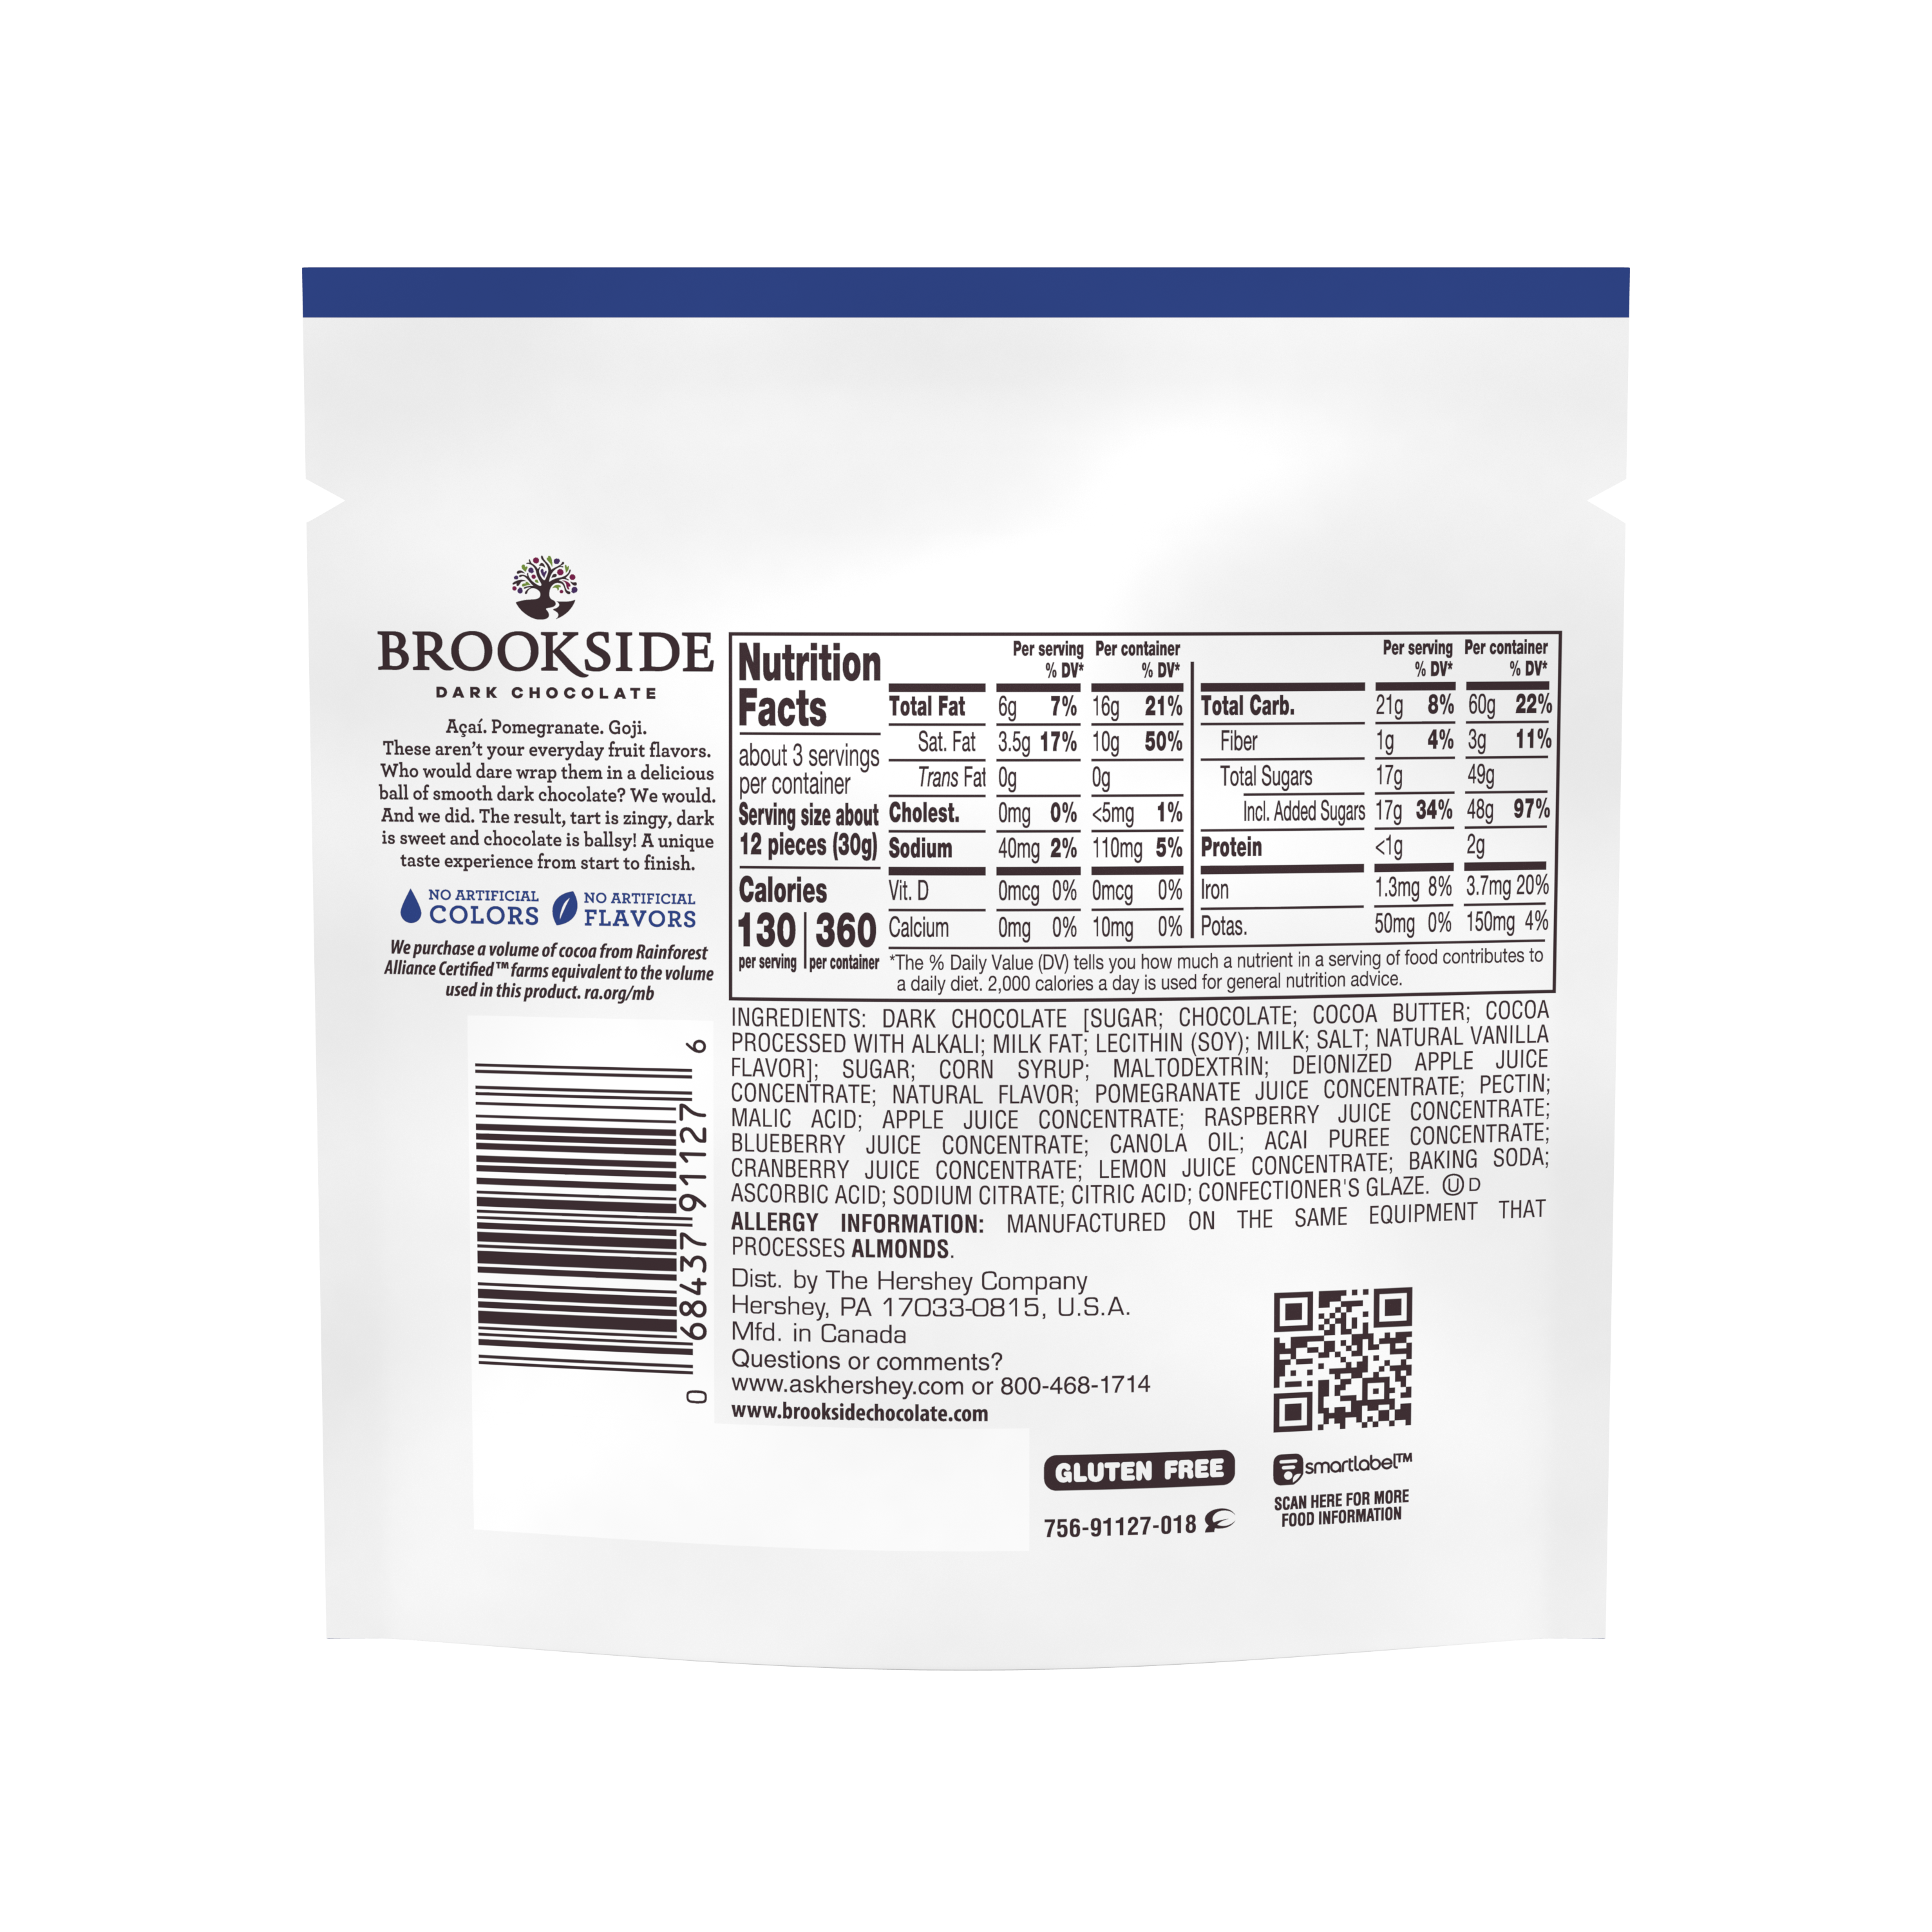 BROOKSIDE Dark Chocolate Acai & Blueberry Candy, 3 oz bag - Back of Package